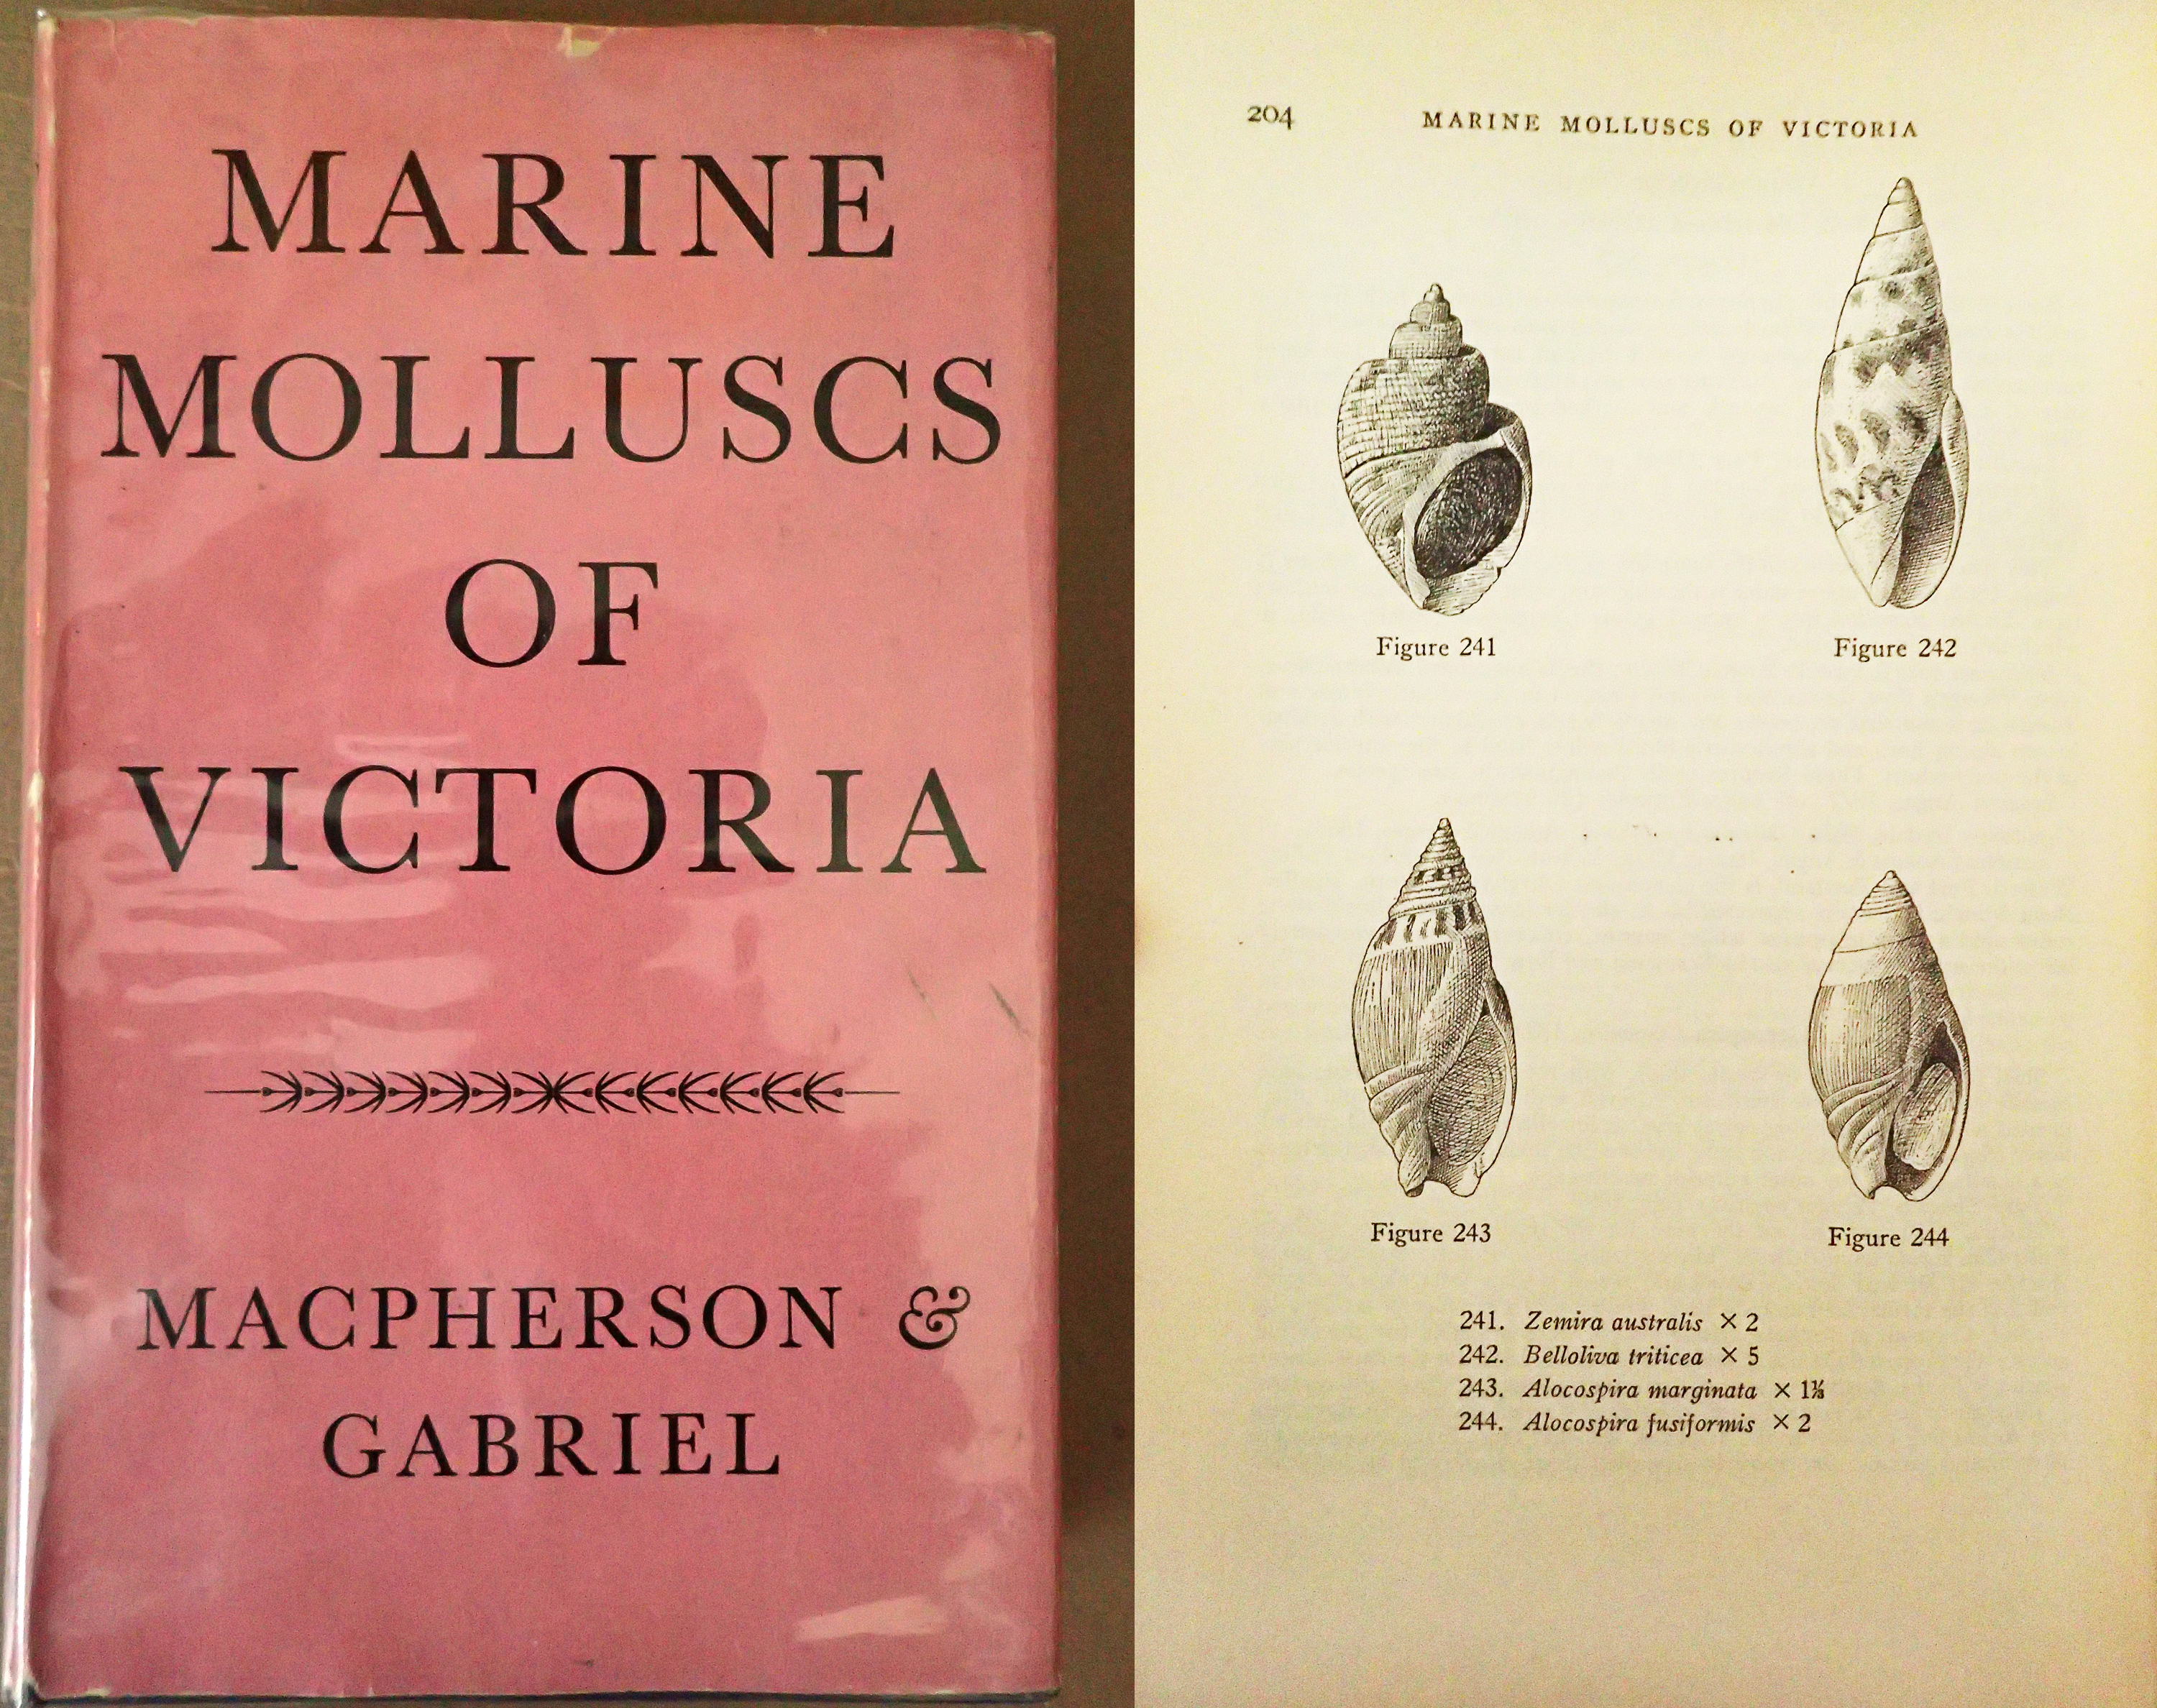 Sample photographs of the book Marine Molluscs of Victoria